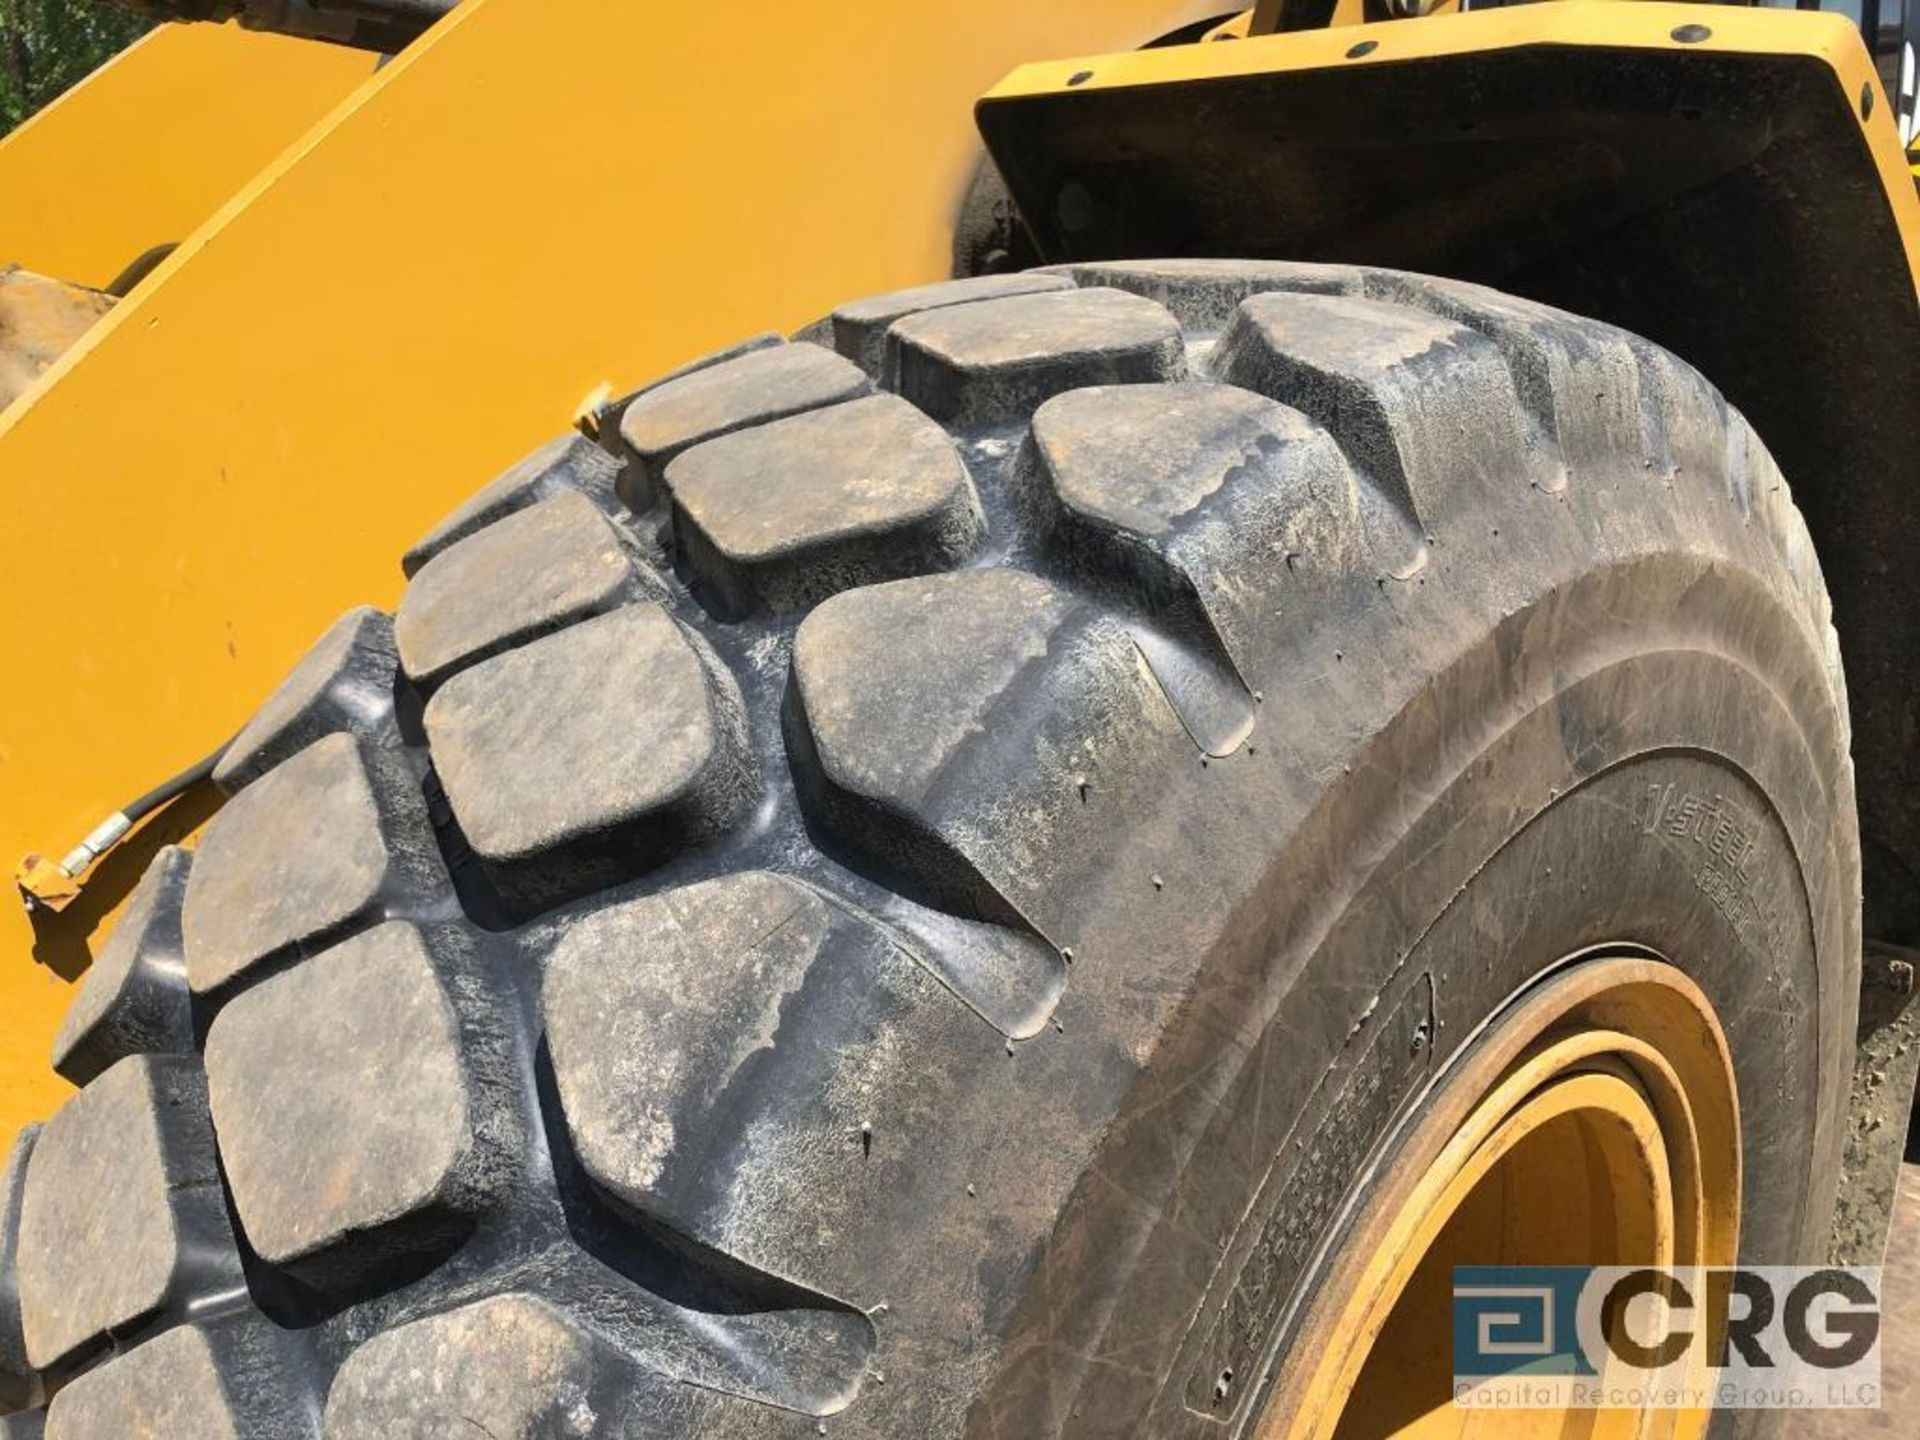 Lot 302 - 2016 CAT 950M Wheel Loader Hydraulic Quick Coupler, Cold Weather Start, 23.5x25 Matching L3 Radial